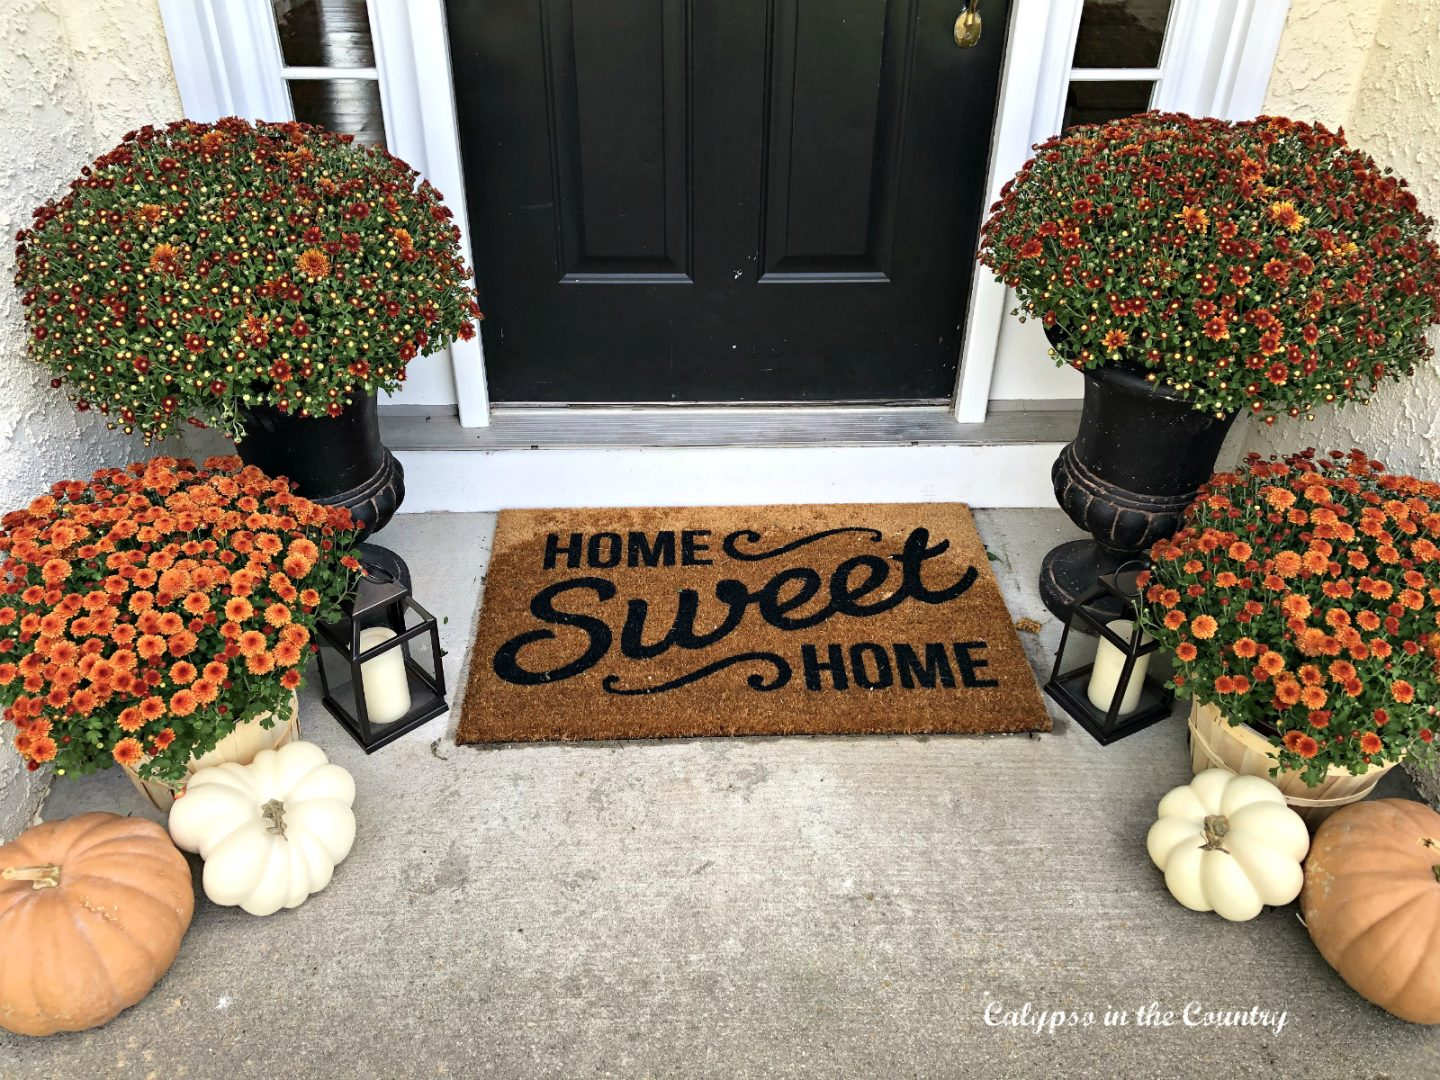 Home Sweet Home welcome mat on front porch